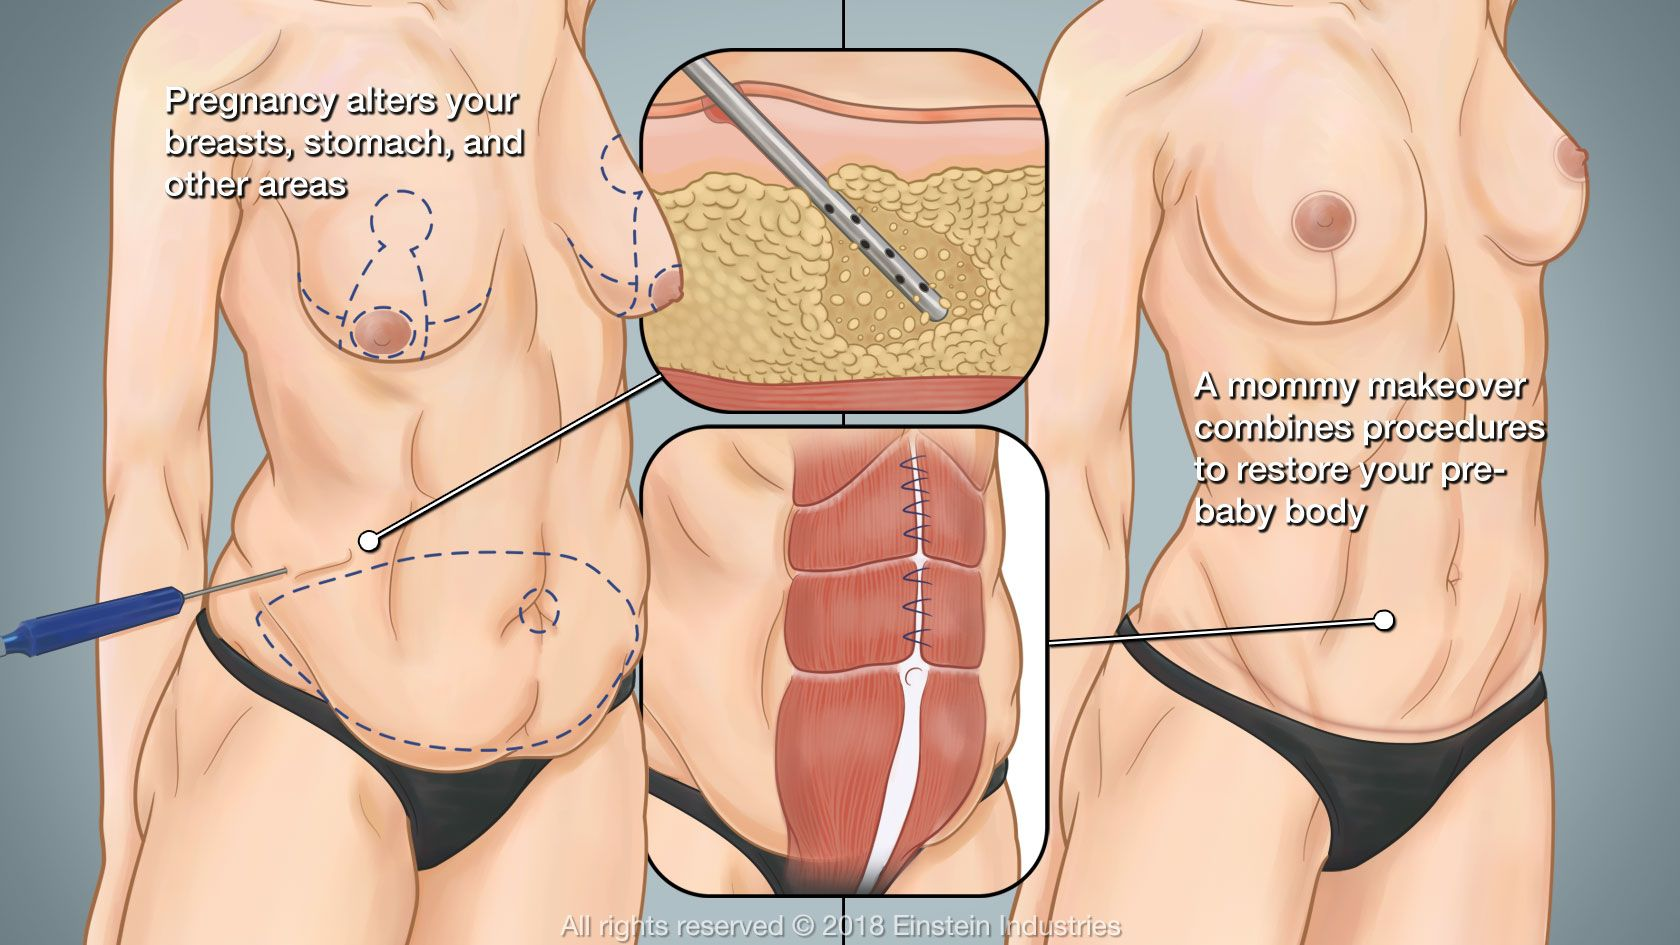 Illustration of body before and after a mommy makeover, with pull-out images of liposuction